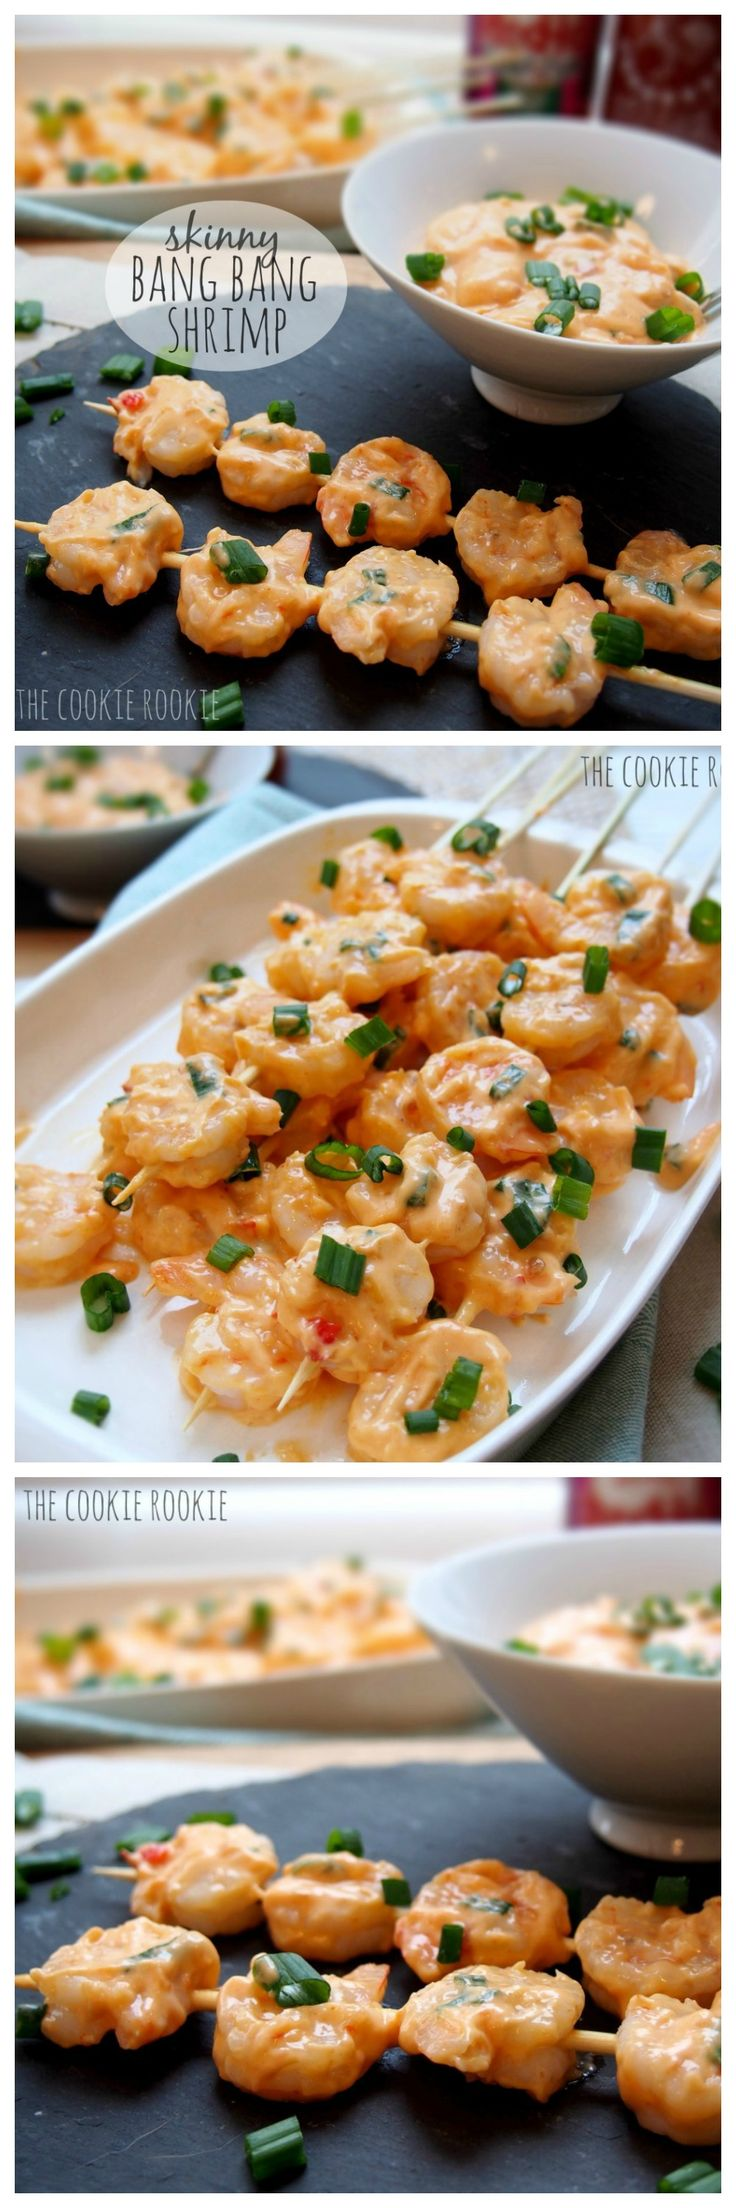 Skinny Bang Bang Shrimp!! Skinny spicy shrimp, the perfect appetizer!! we love these! {The Cookie Rookie}